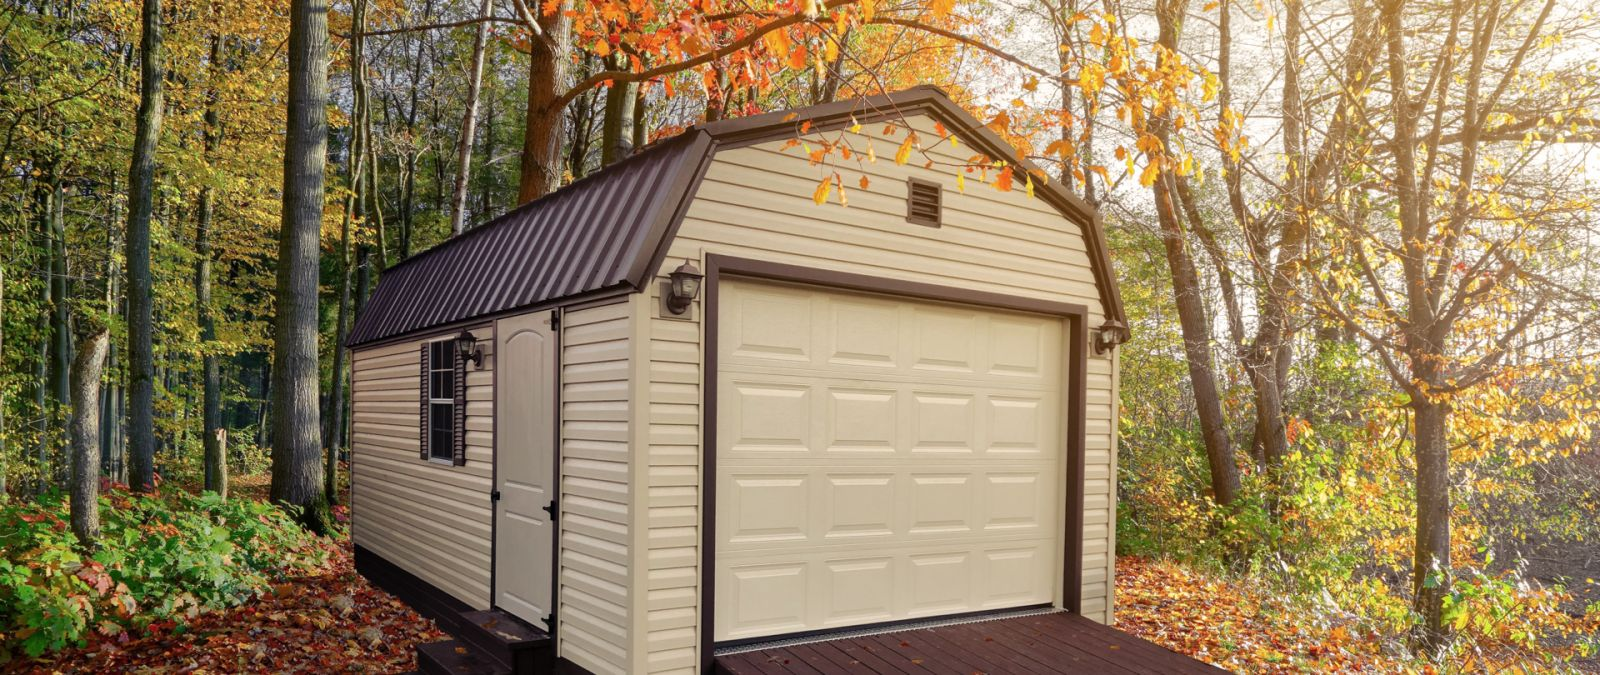 A custom prebuilt garage in Tennessee with brown vinyl siding and a loft